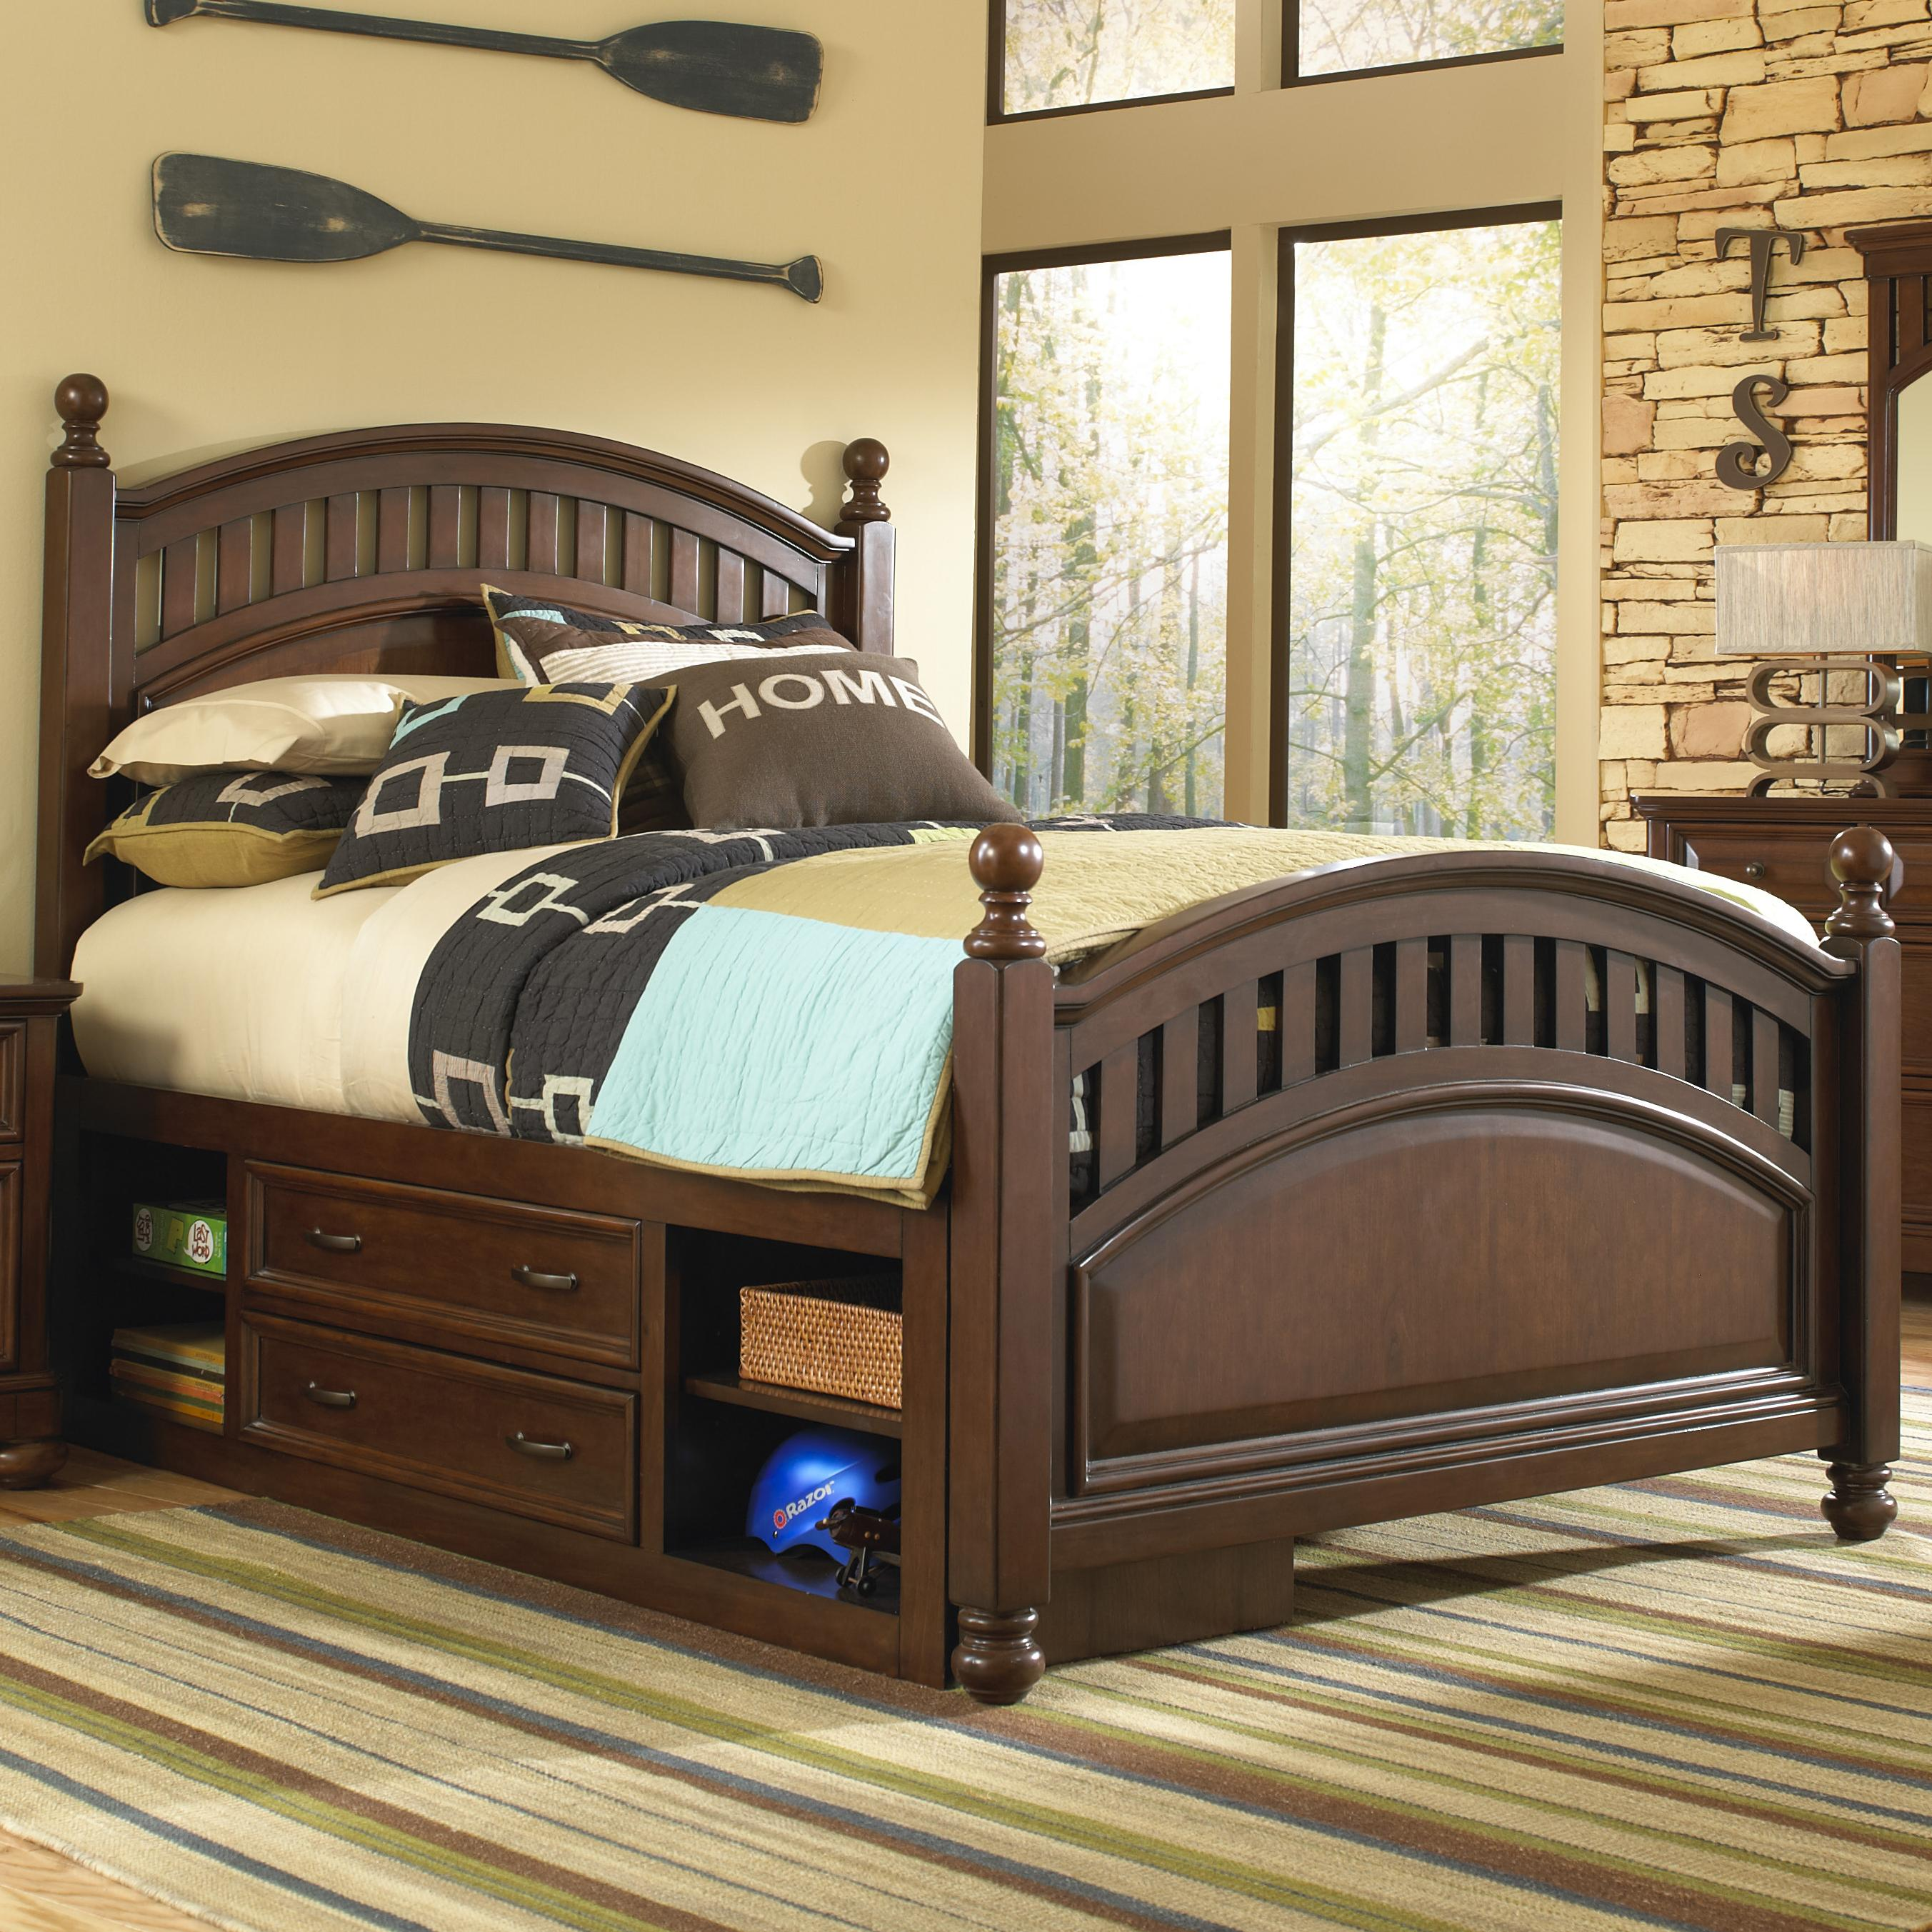 Kidz Gear Griffin Full Low Post Bed  - Item Number: 846-632+633+401+643